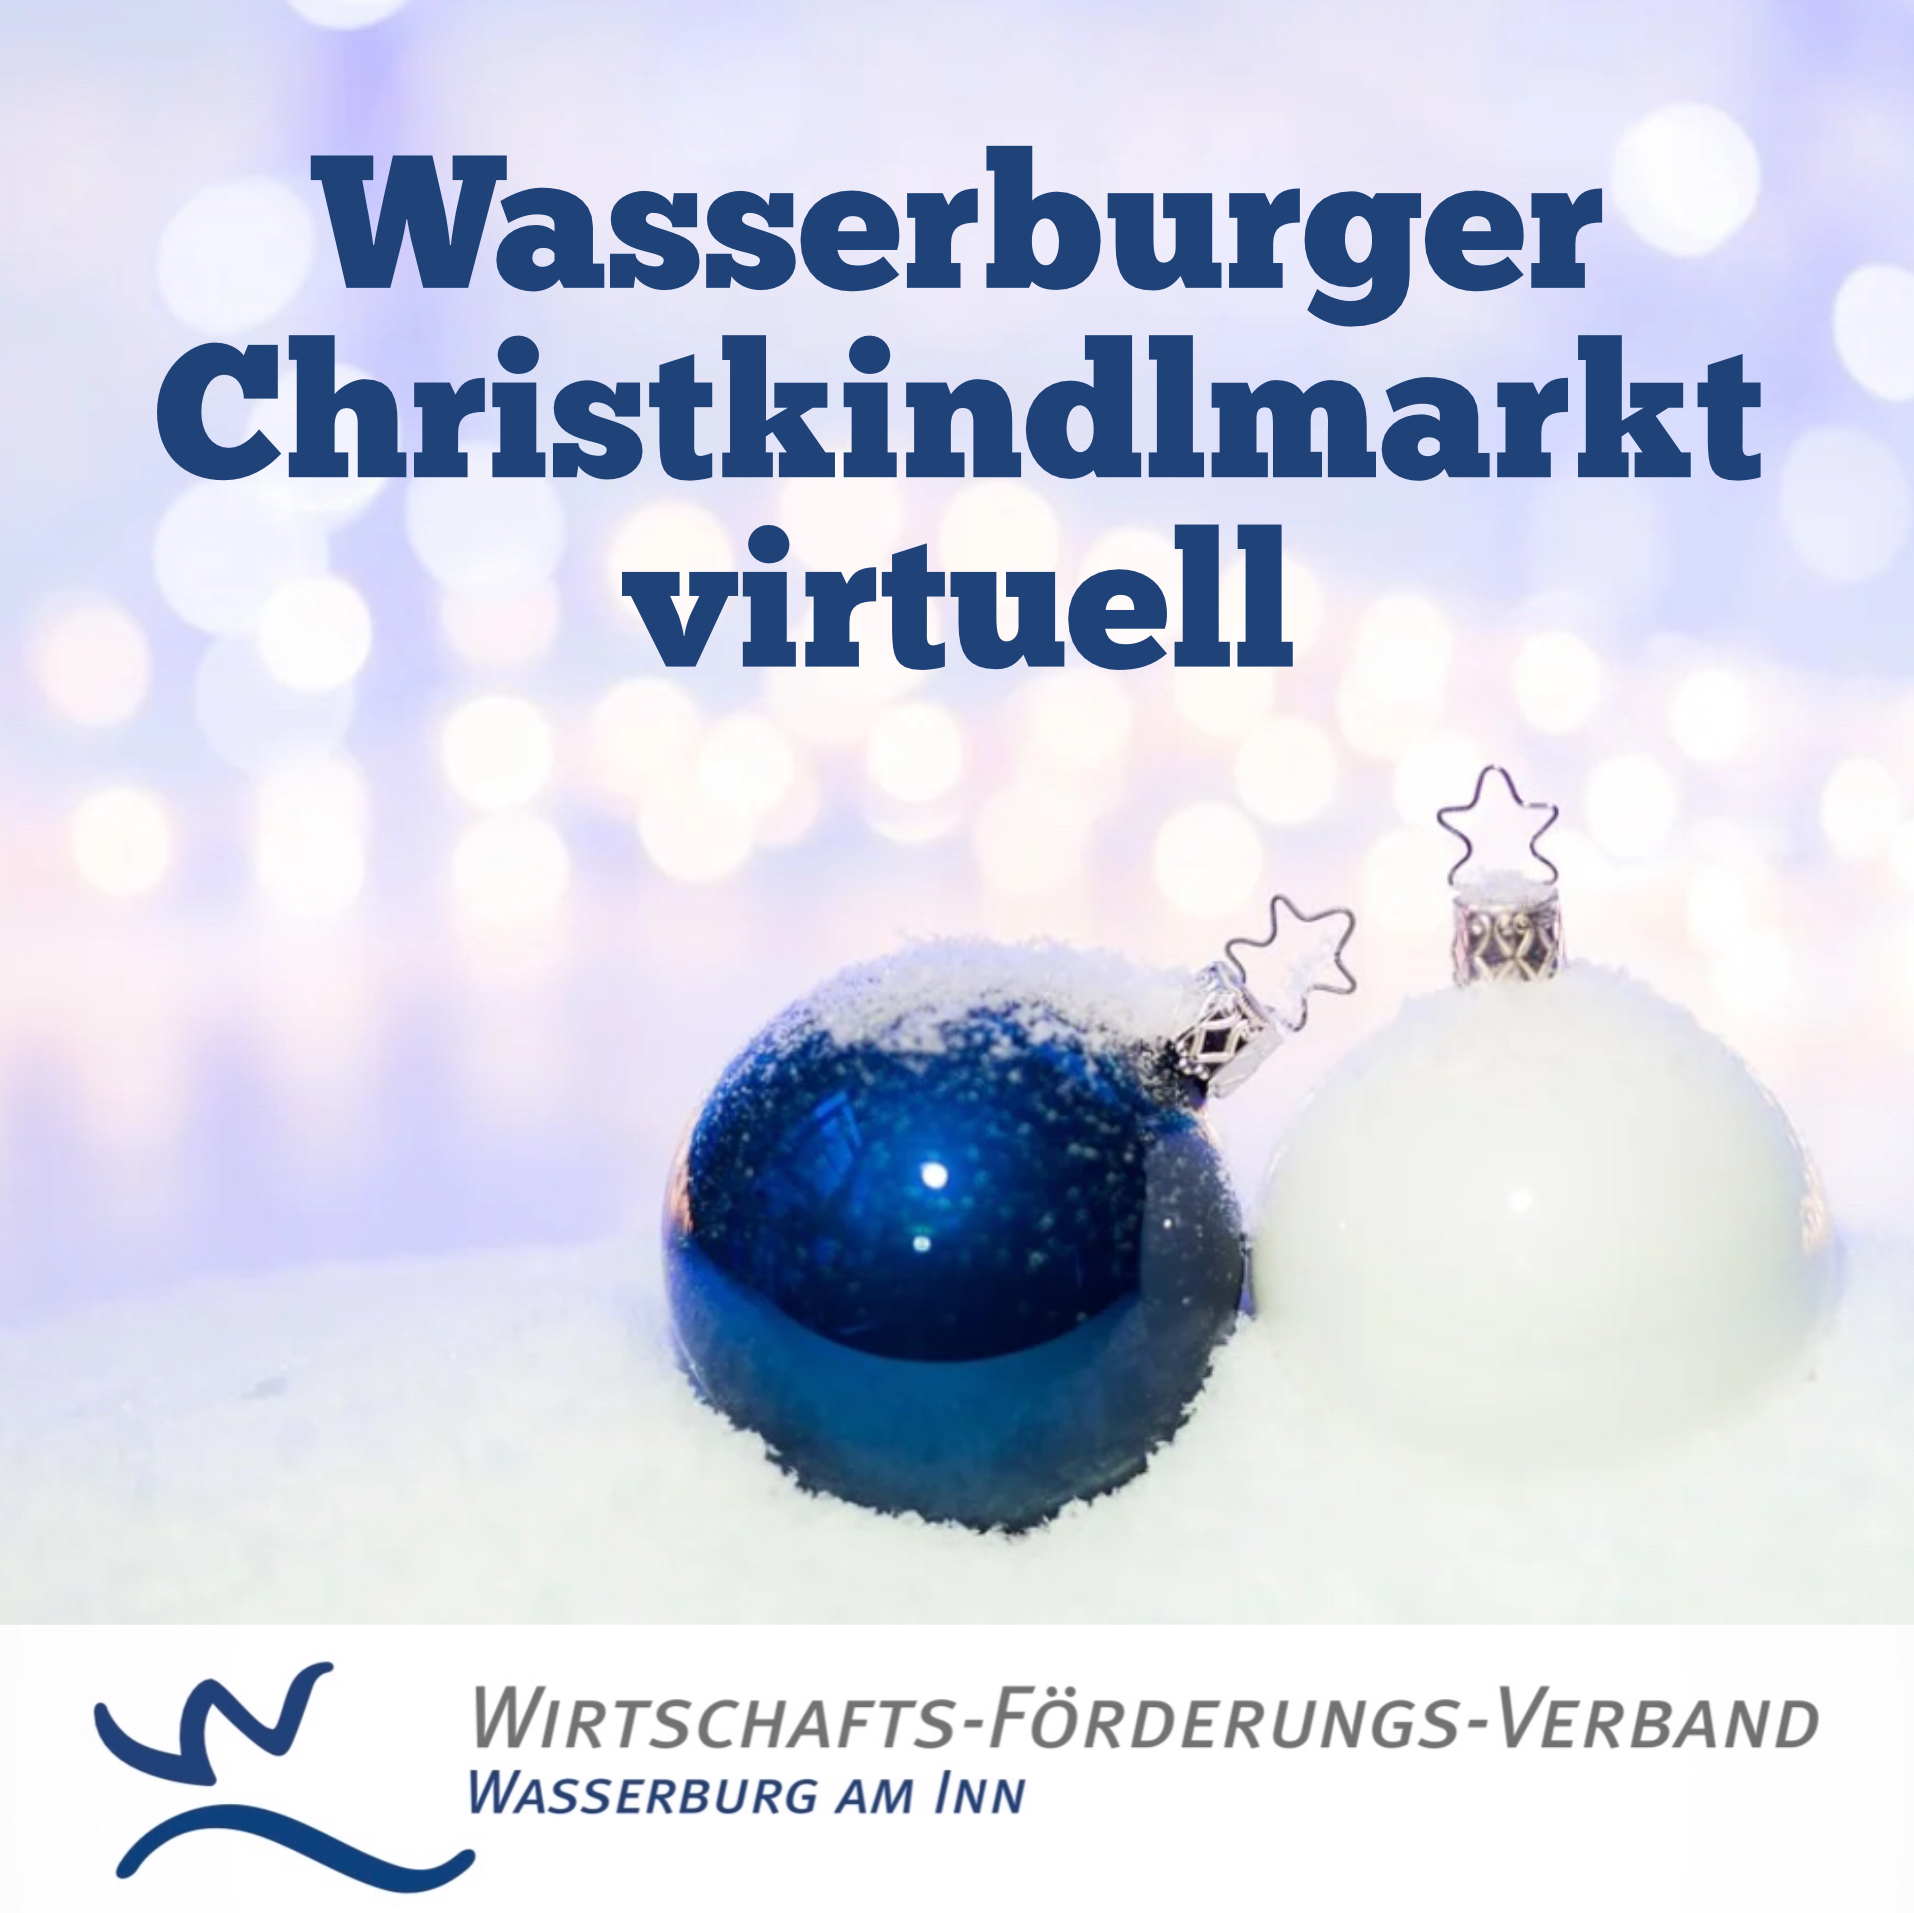 Wasserburger Christkindlmarkt virtuell